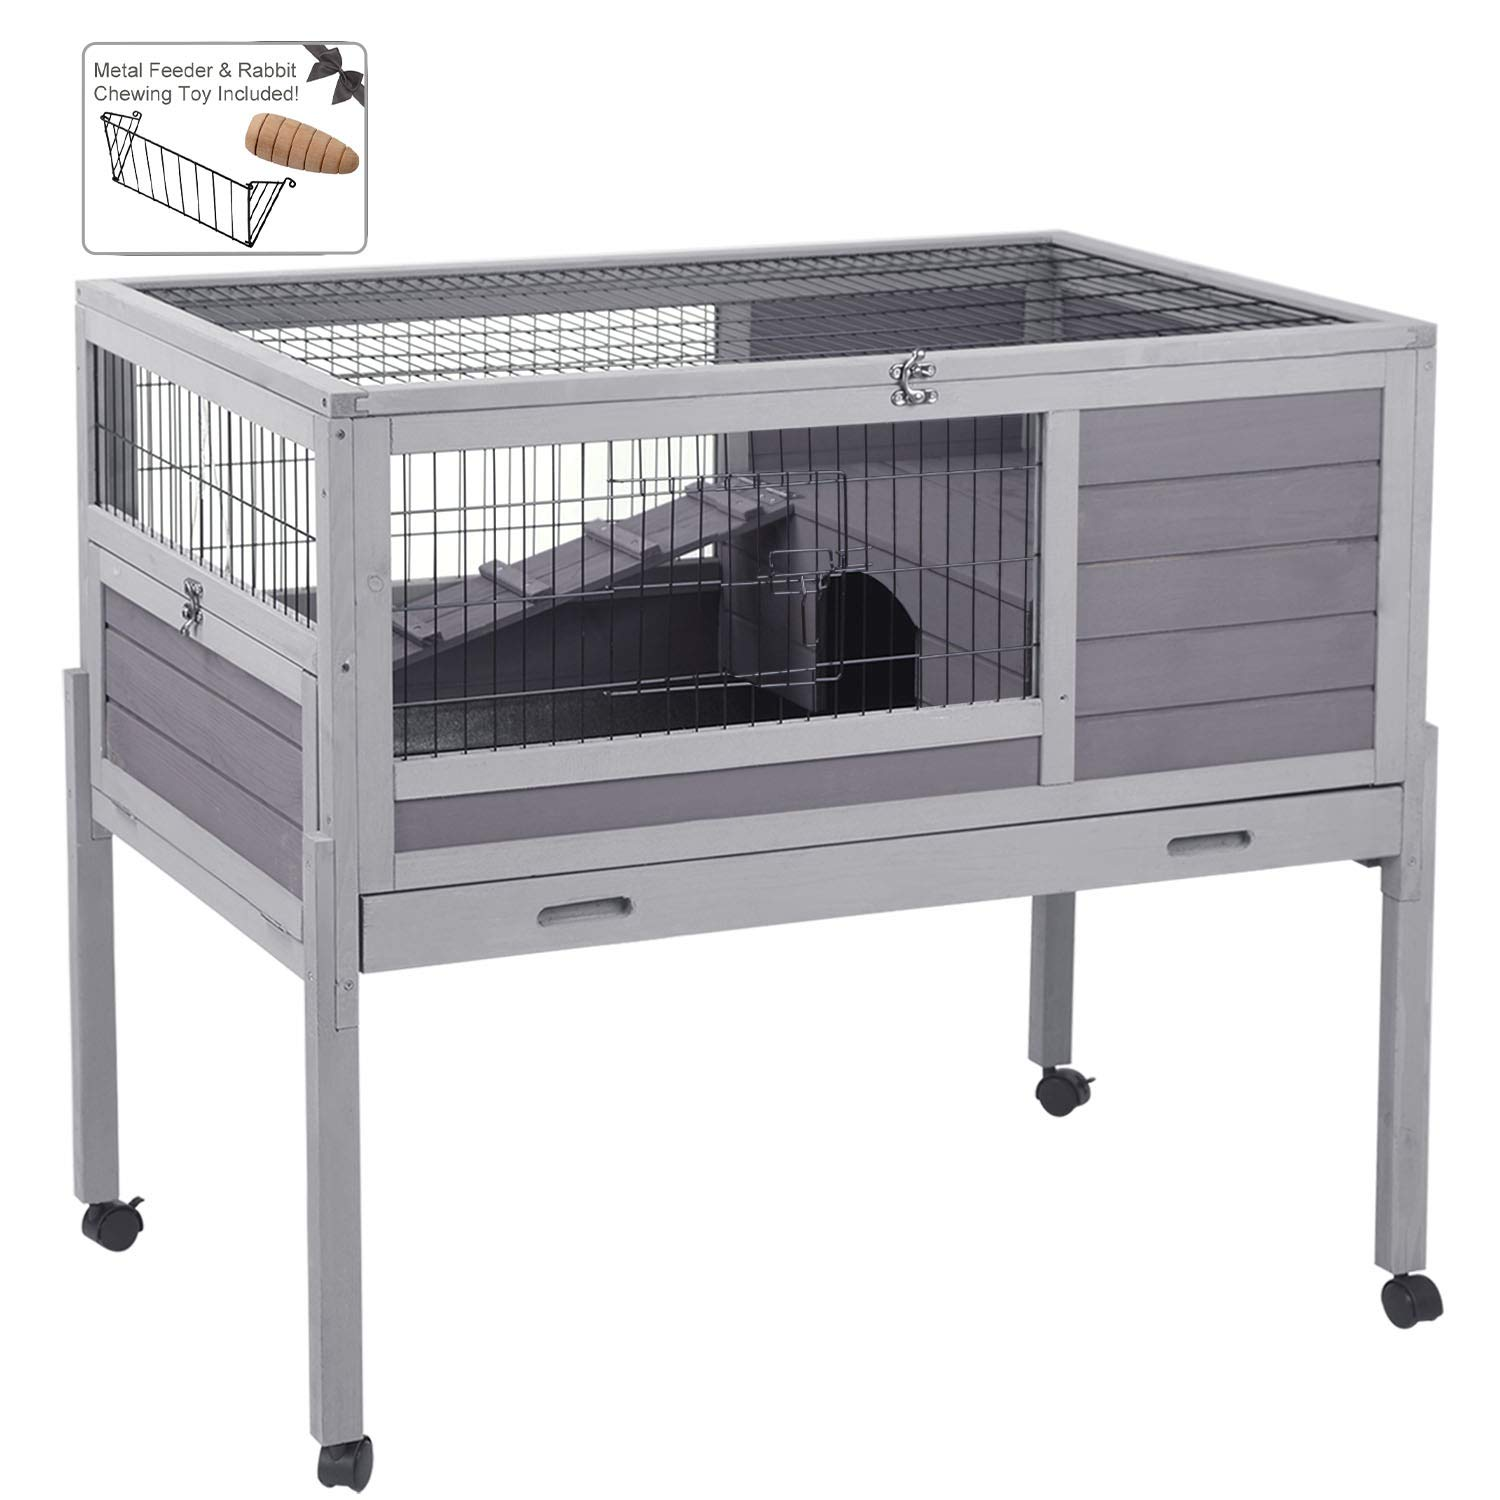 Aivituvin 39.4'' Rabbit Hutch Indoor and Outdoor Bunny Cage with Deep Not Leakage Pull Out Tray,Guinea Pig Cage on Wheels by Aivituvin